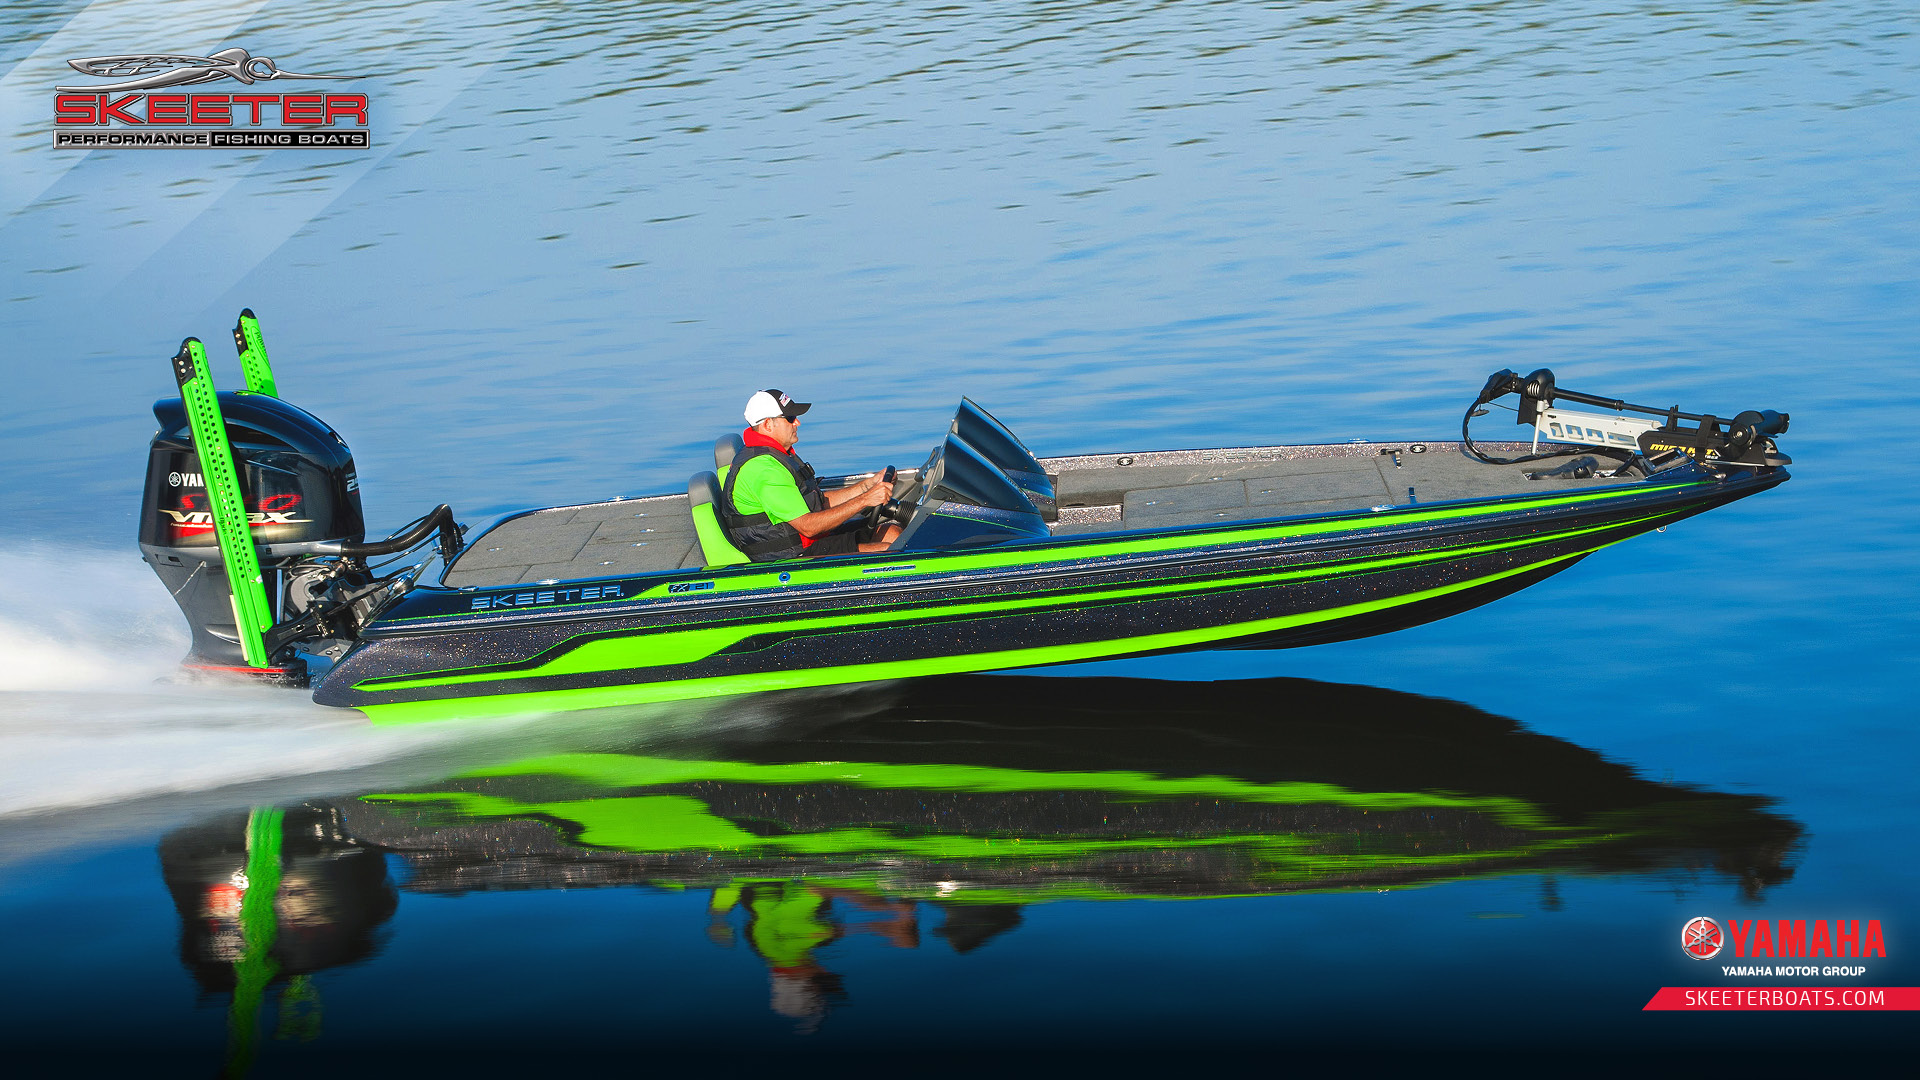 bass boat fishing wallpaper backgrounds - photo #21